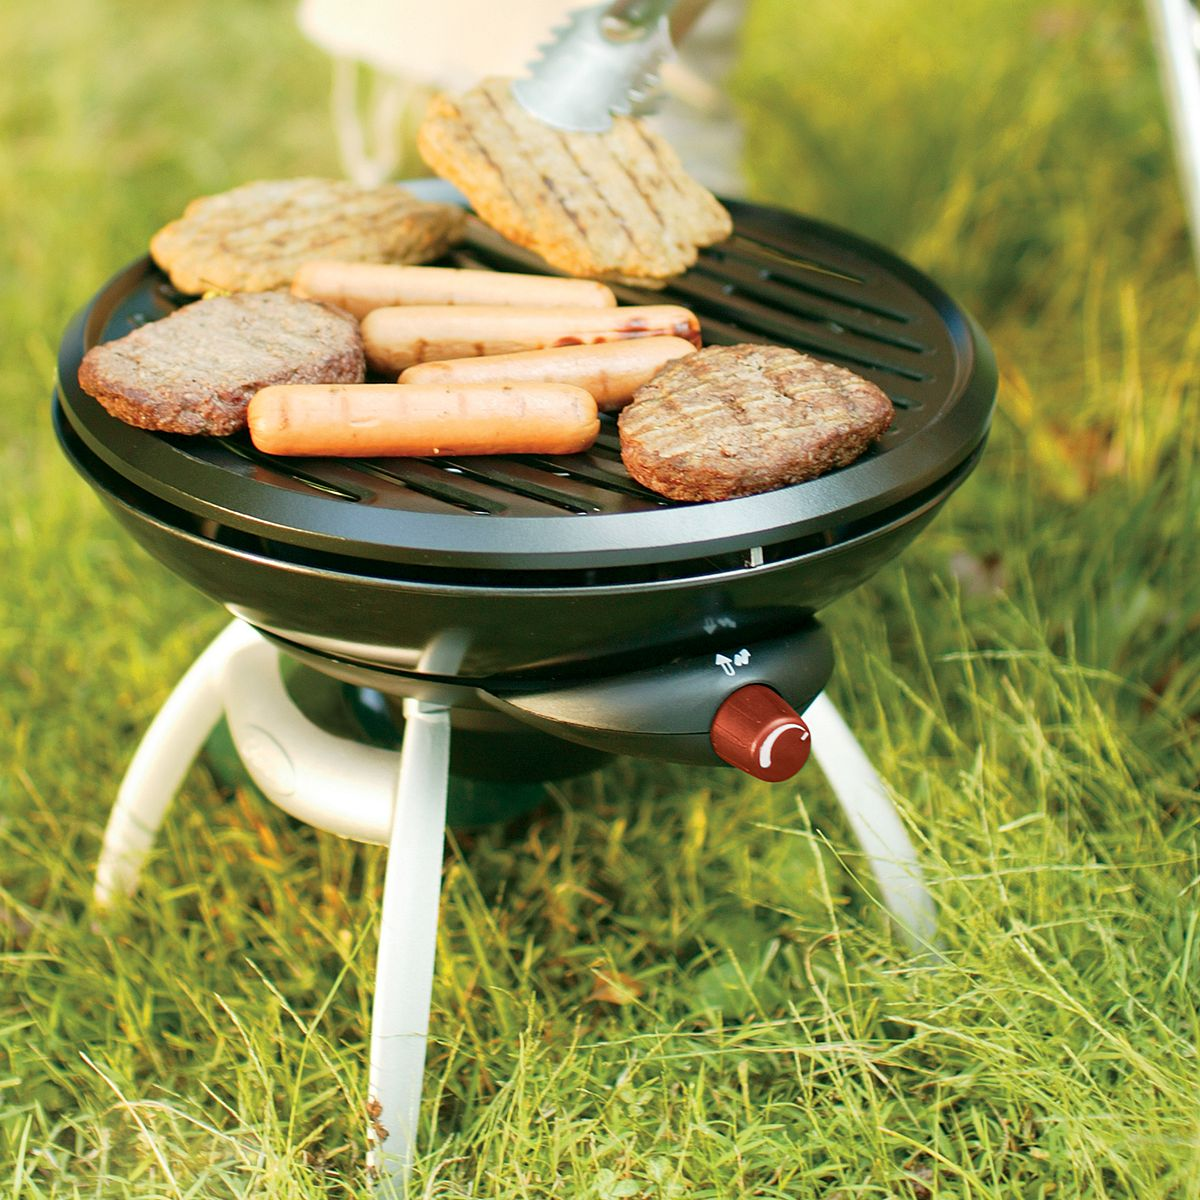 .99 Coleman Roadtrip Party Portable Propane Grill at Kohl's!